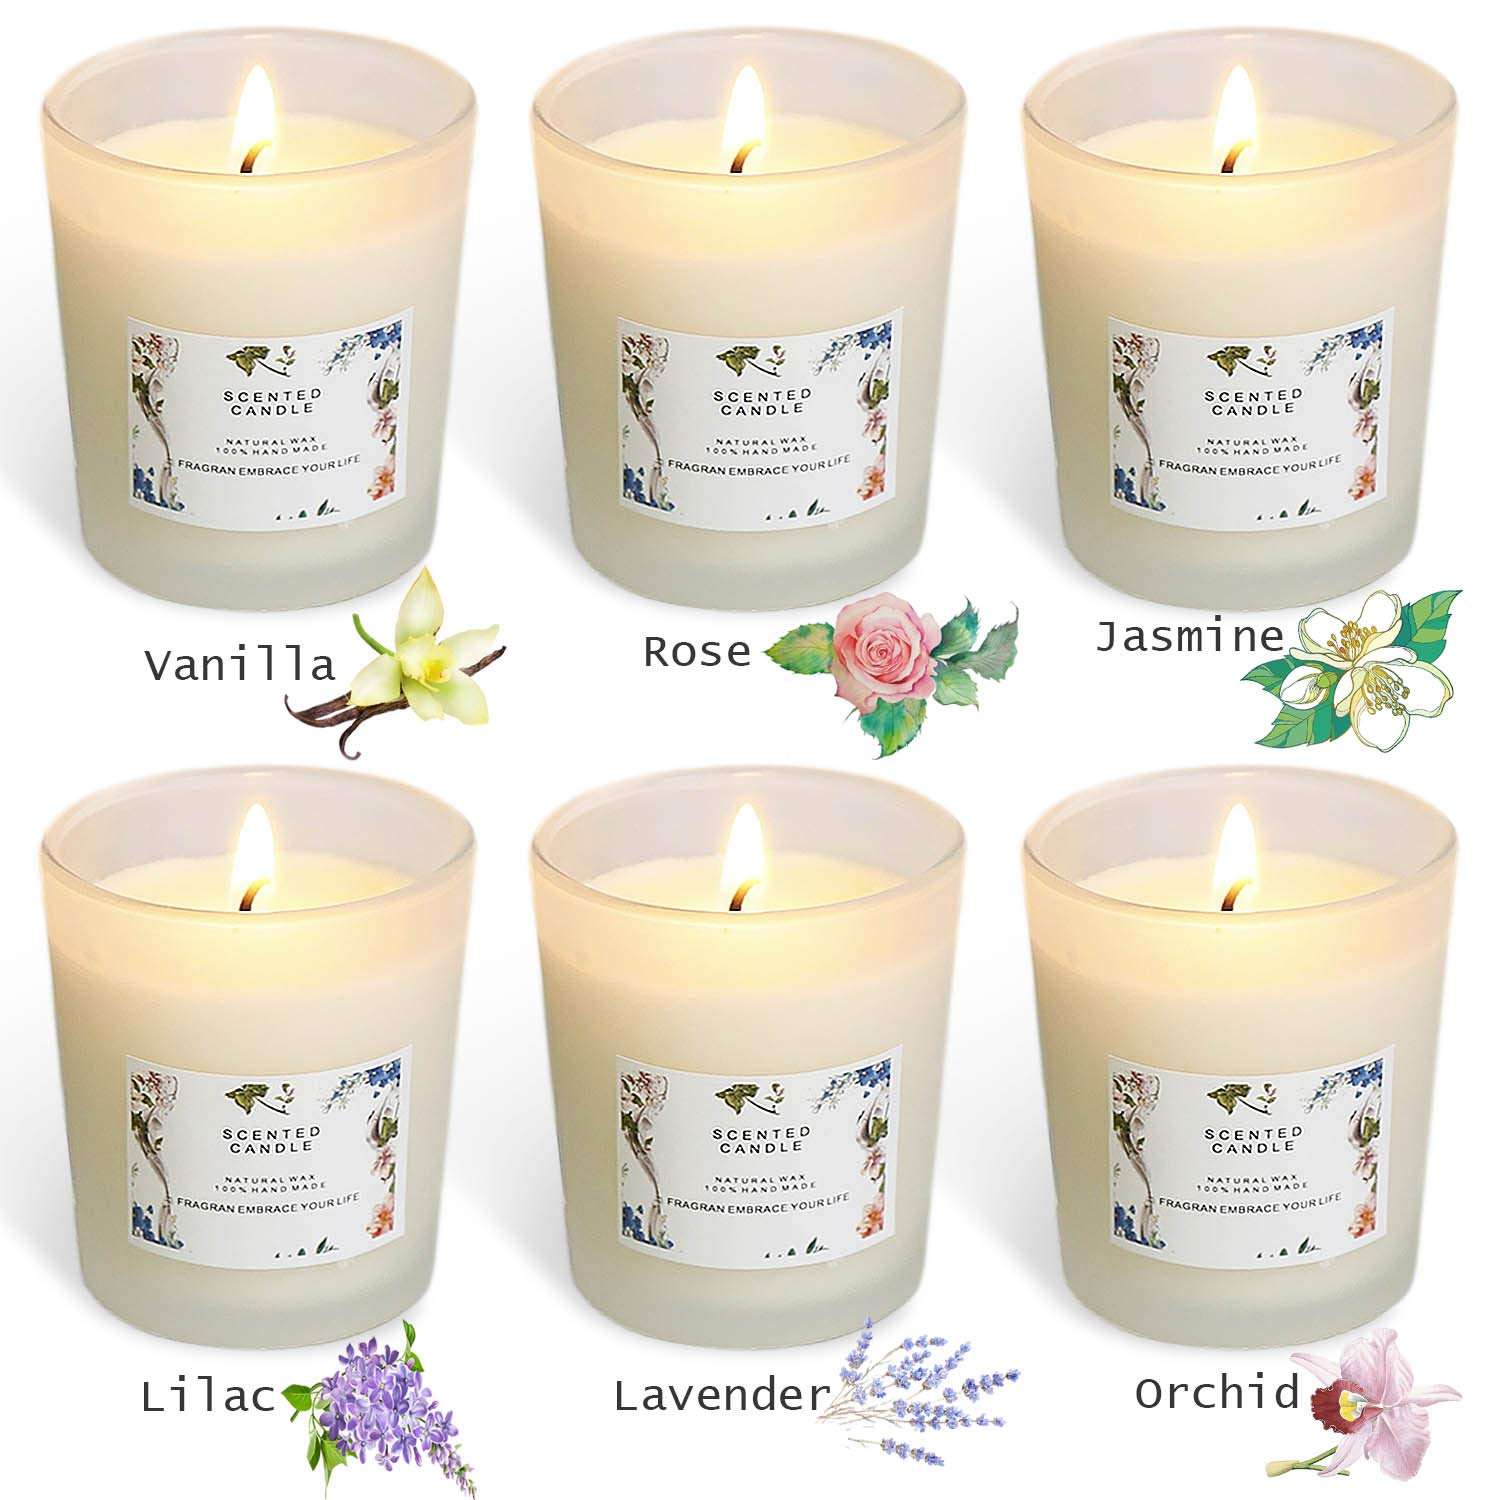 YIHANG Scented Candle Gift Set - (6 x 2.2 Oz/65g) - Aromatherapy Set of Fragrance Soy Wax - for Stress Relief and Relaxation by YIHANG